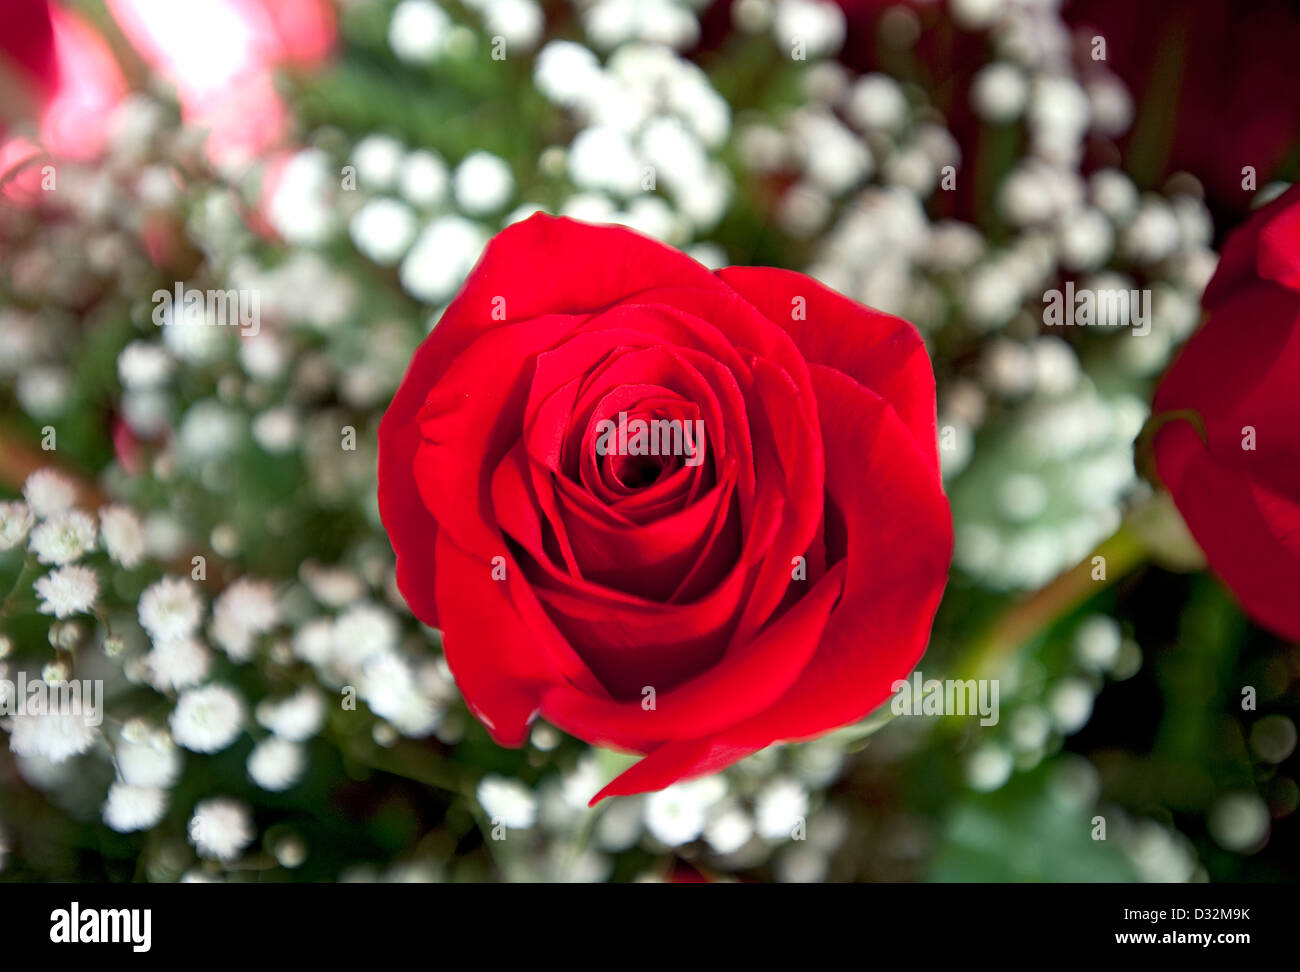 Red rose, Genus rosa - Stock Image